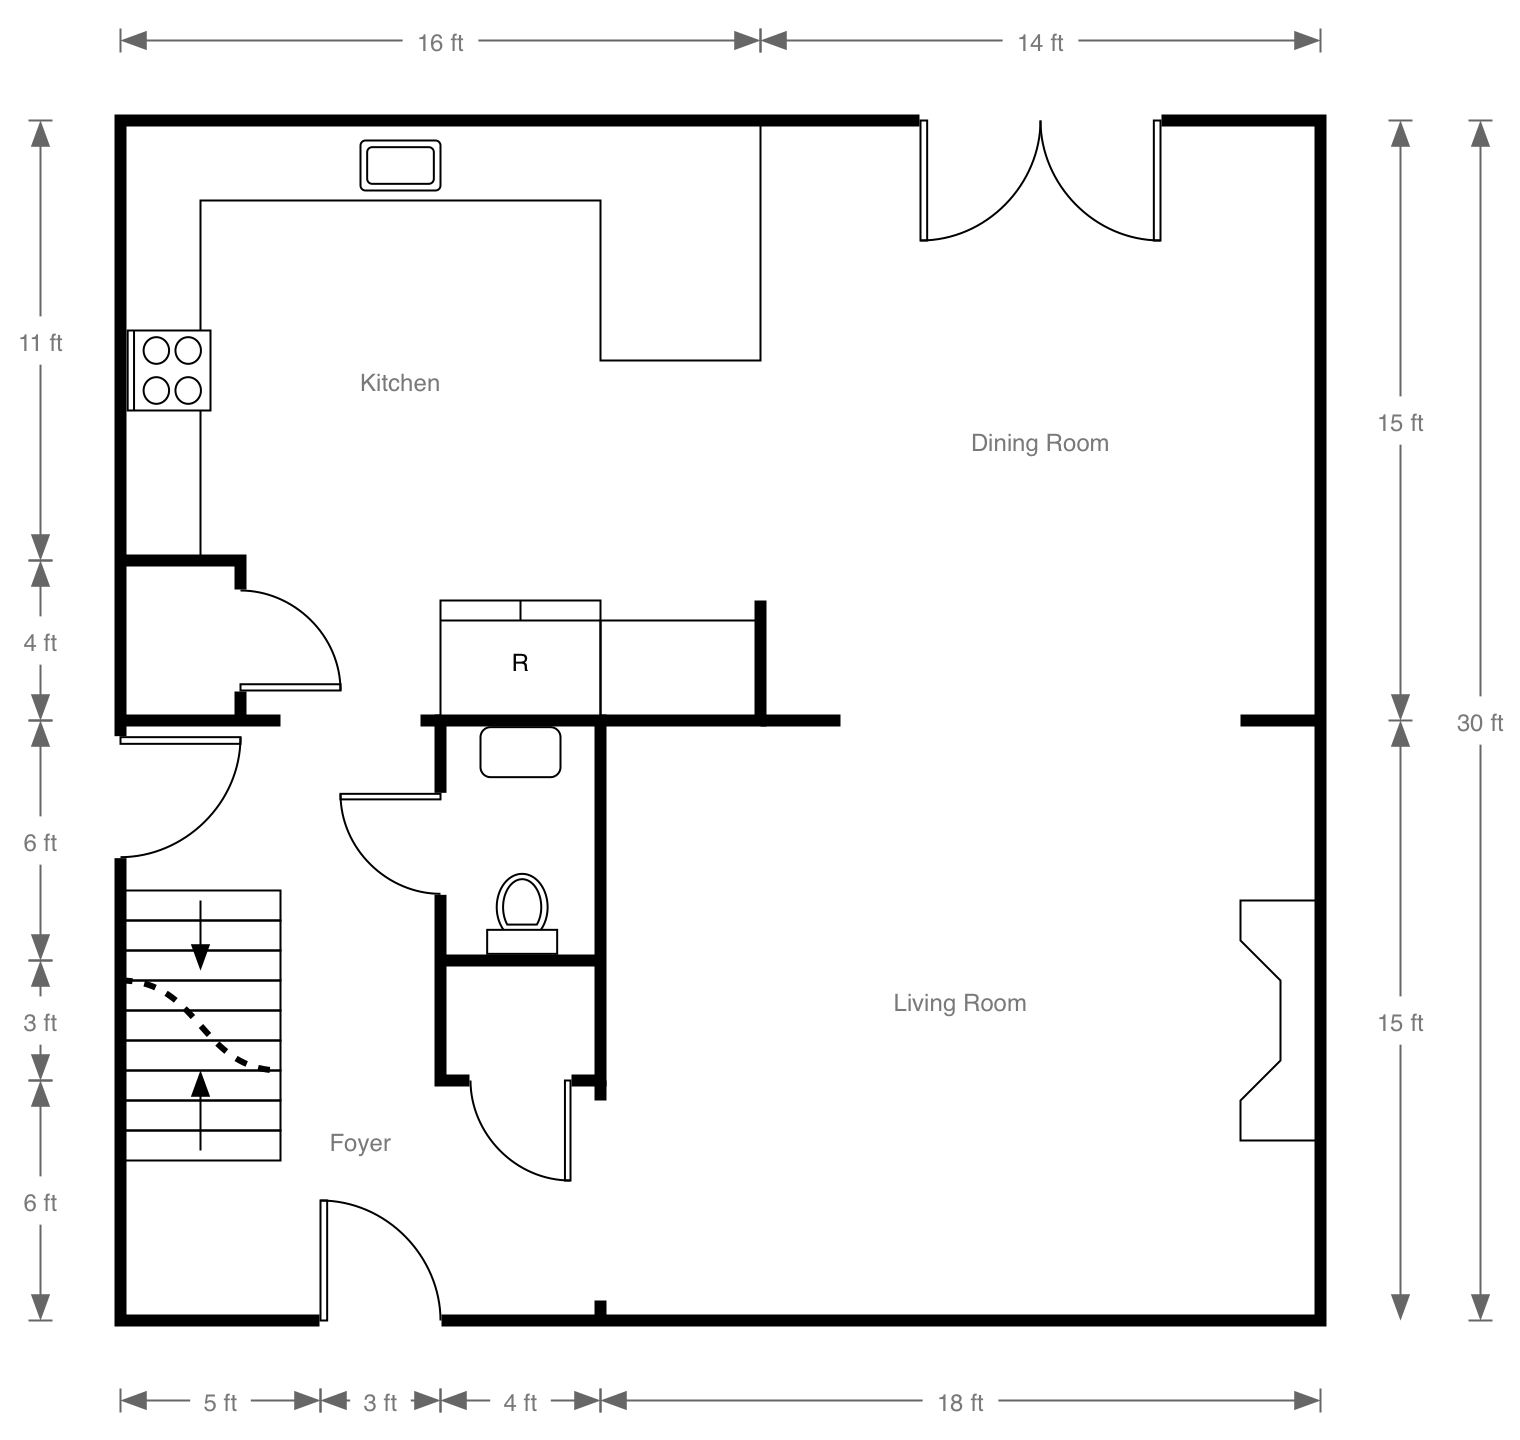 Kids math teacher april 2013 Floor plan design website